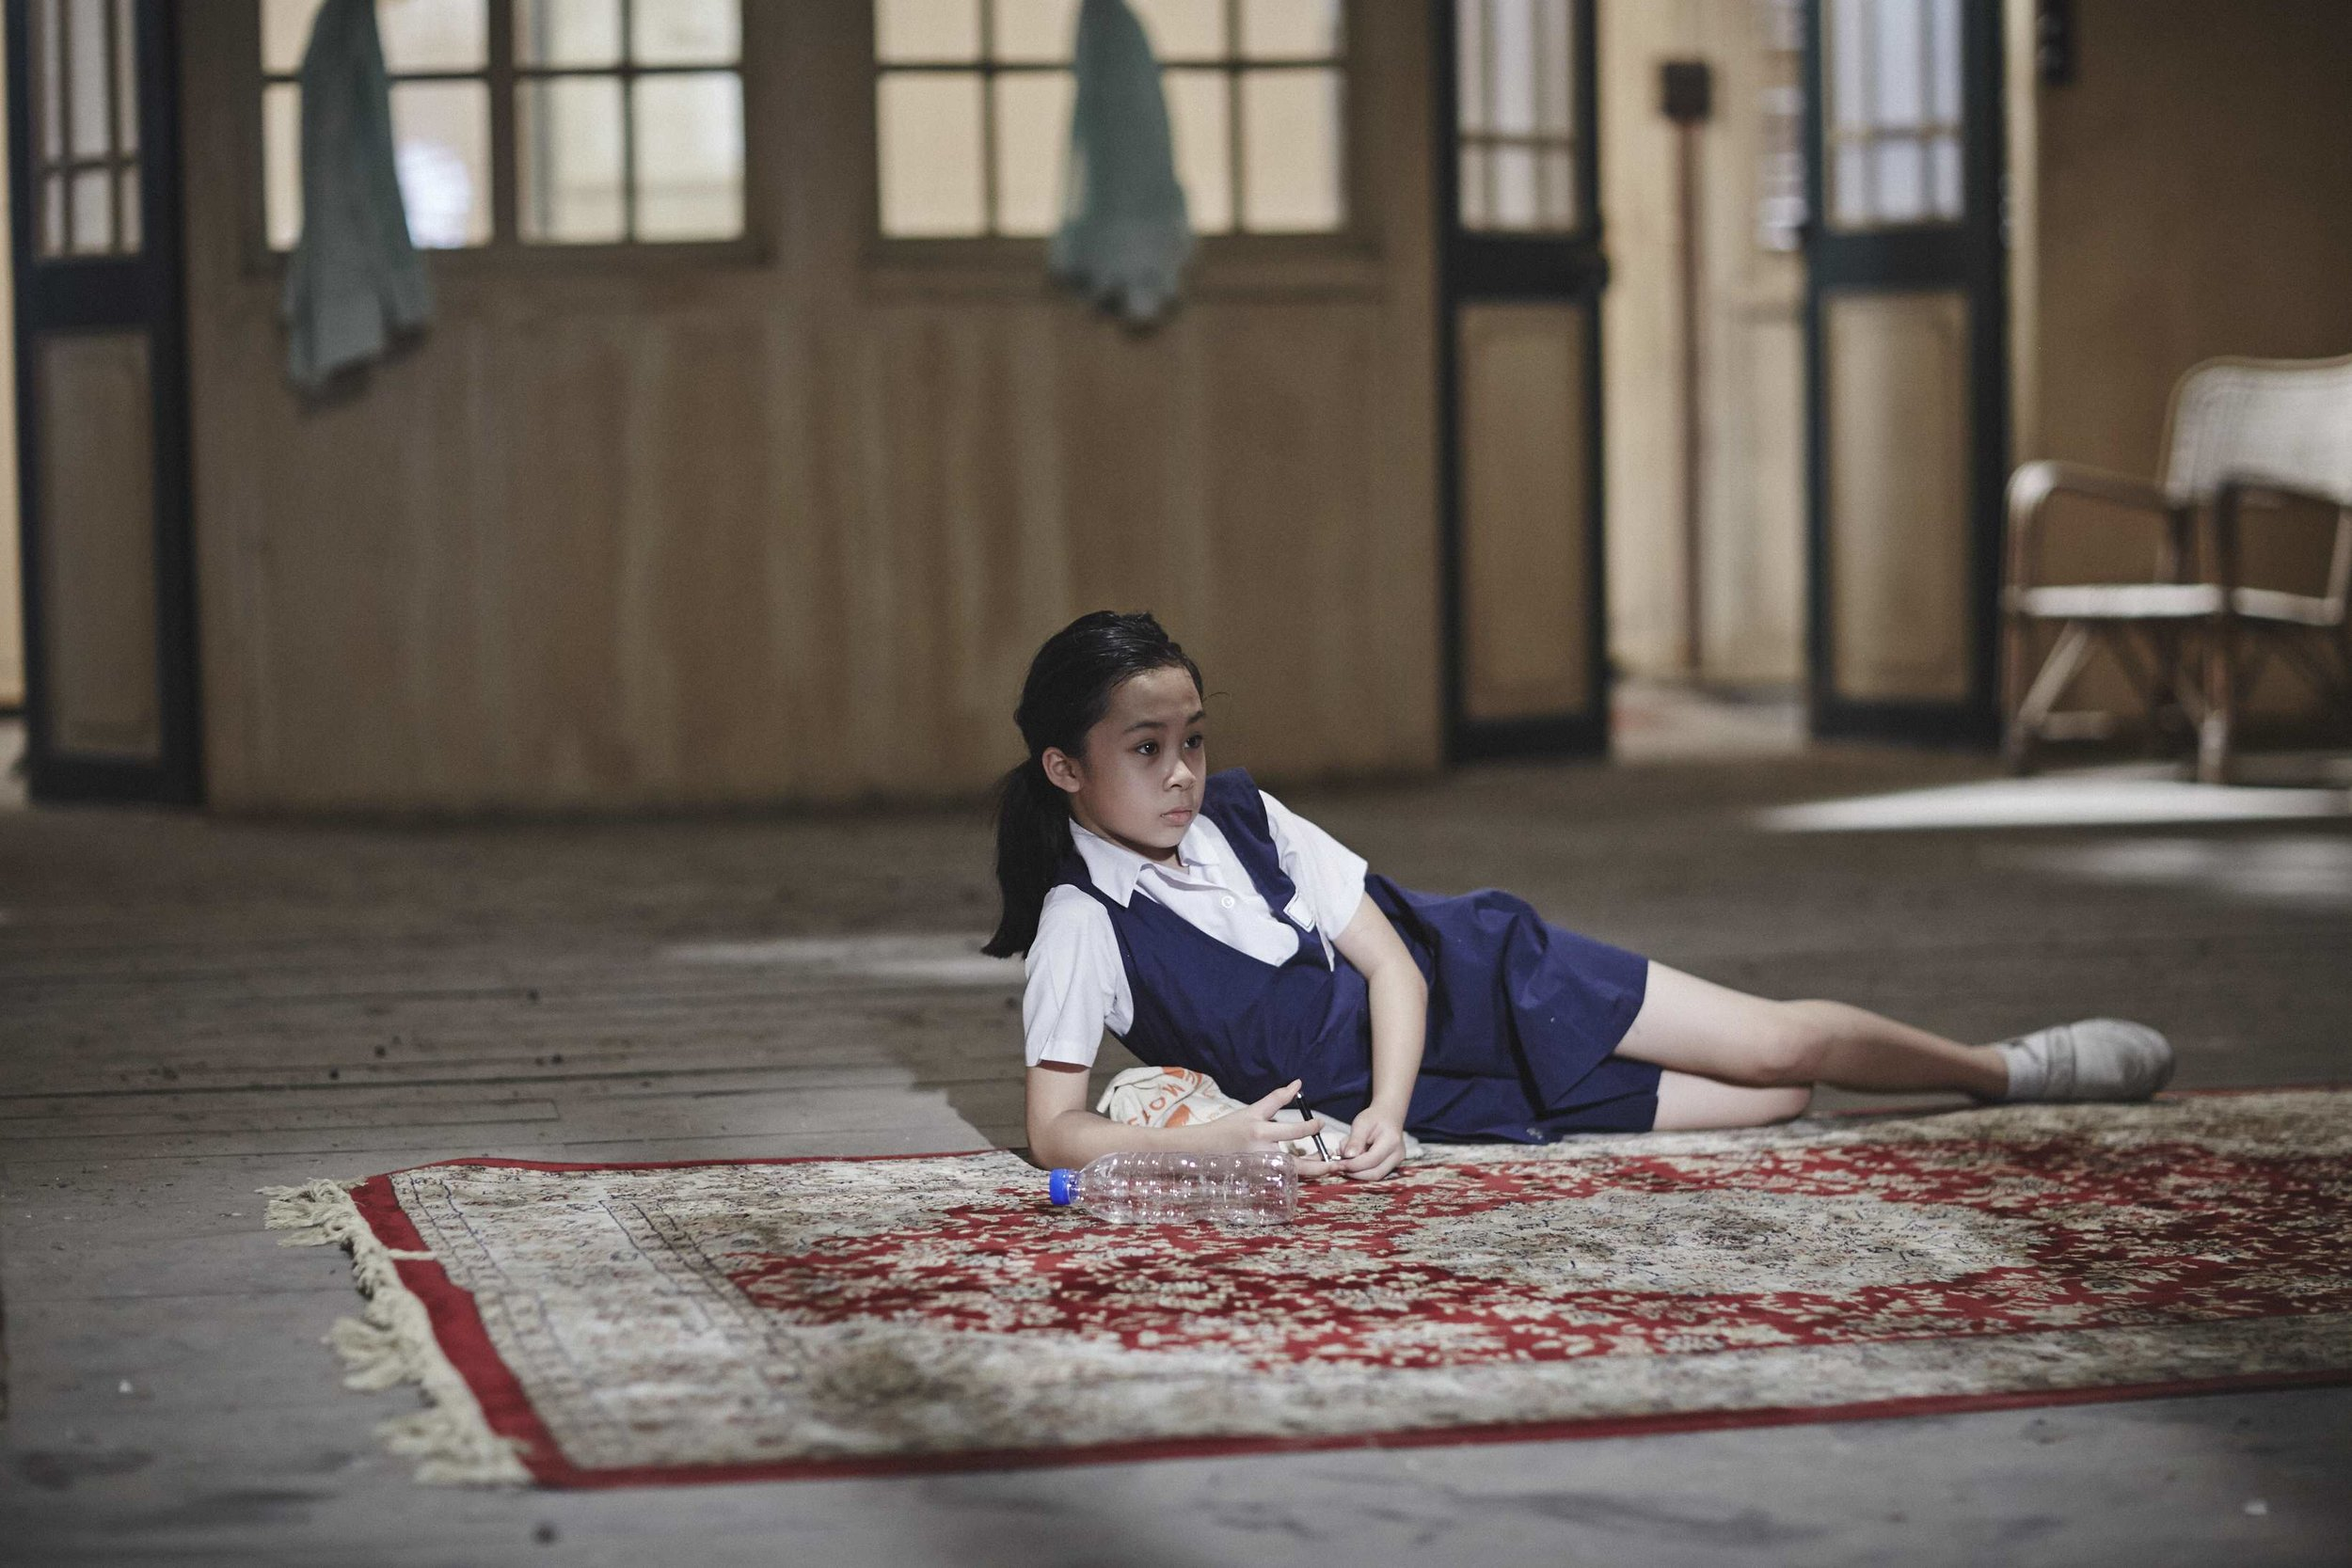 Charlotte Lim / Malaysia / 2016 / Mandarin / 30min   A schoolgirl, meticulously observed by a patient camera in a small, yet sensitive story. Perhaps a lesson in life, for it isn't as innocent as it seems.   Director: Charlotte Lim has assisted in direction and production for Malaysian new wave pioneers like James Lee and Ho Yuhang in films like /Things We Do when We Fall in Love/ /Petaling Street Warriors/ (James Lee); /Sanctuary/ /Rain Dogs/ /At The End of Daybreak/ (Ho Yuhang). Recently she had just finished the shooting on Ho Yuhang's action-violent movie /Mrs.K/.